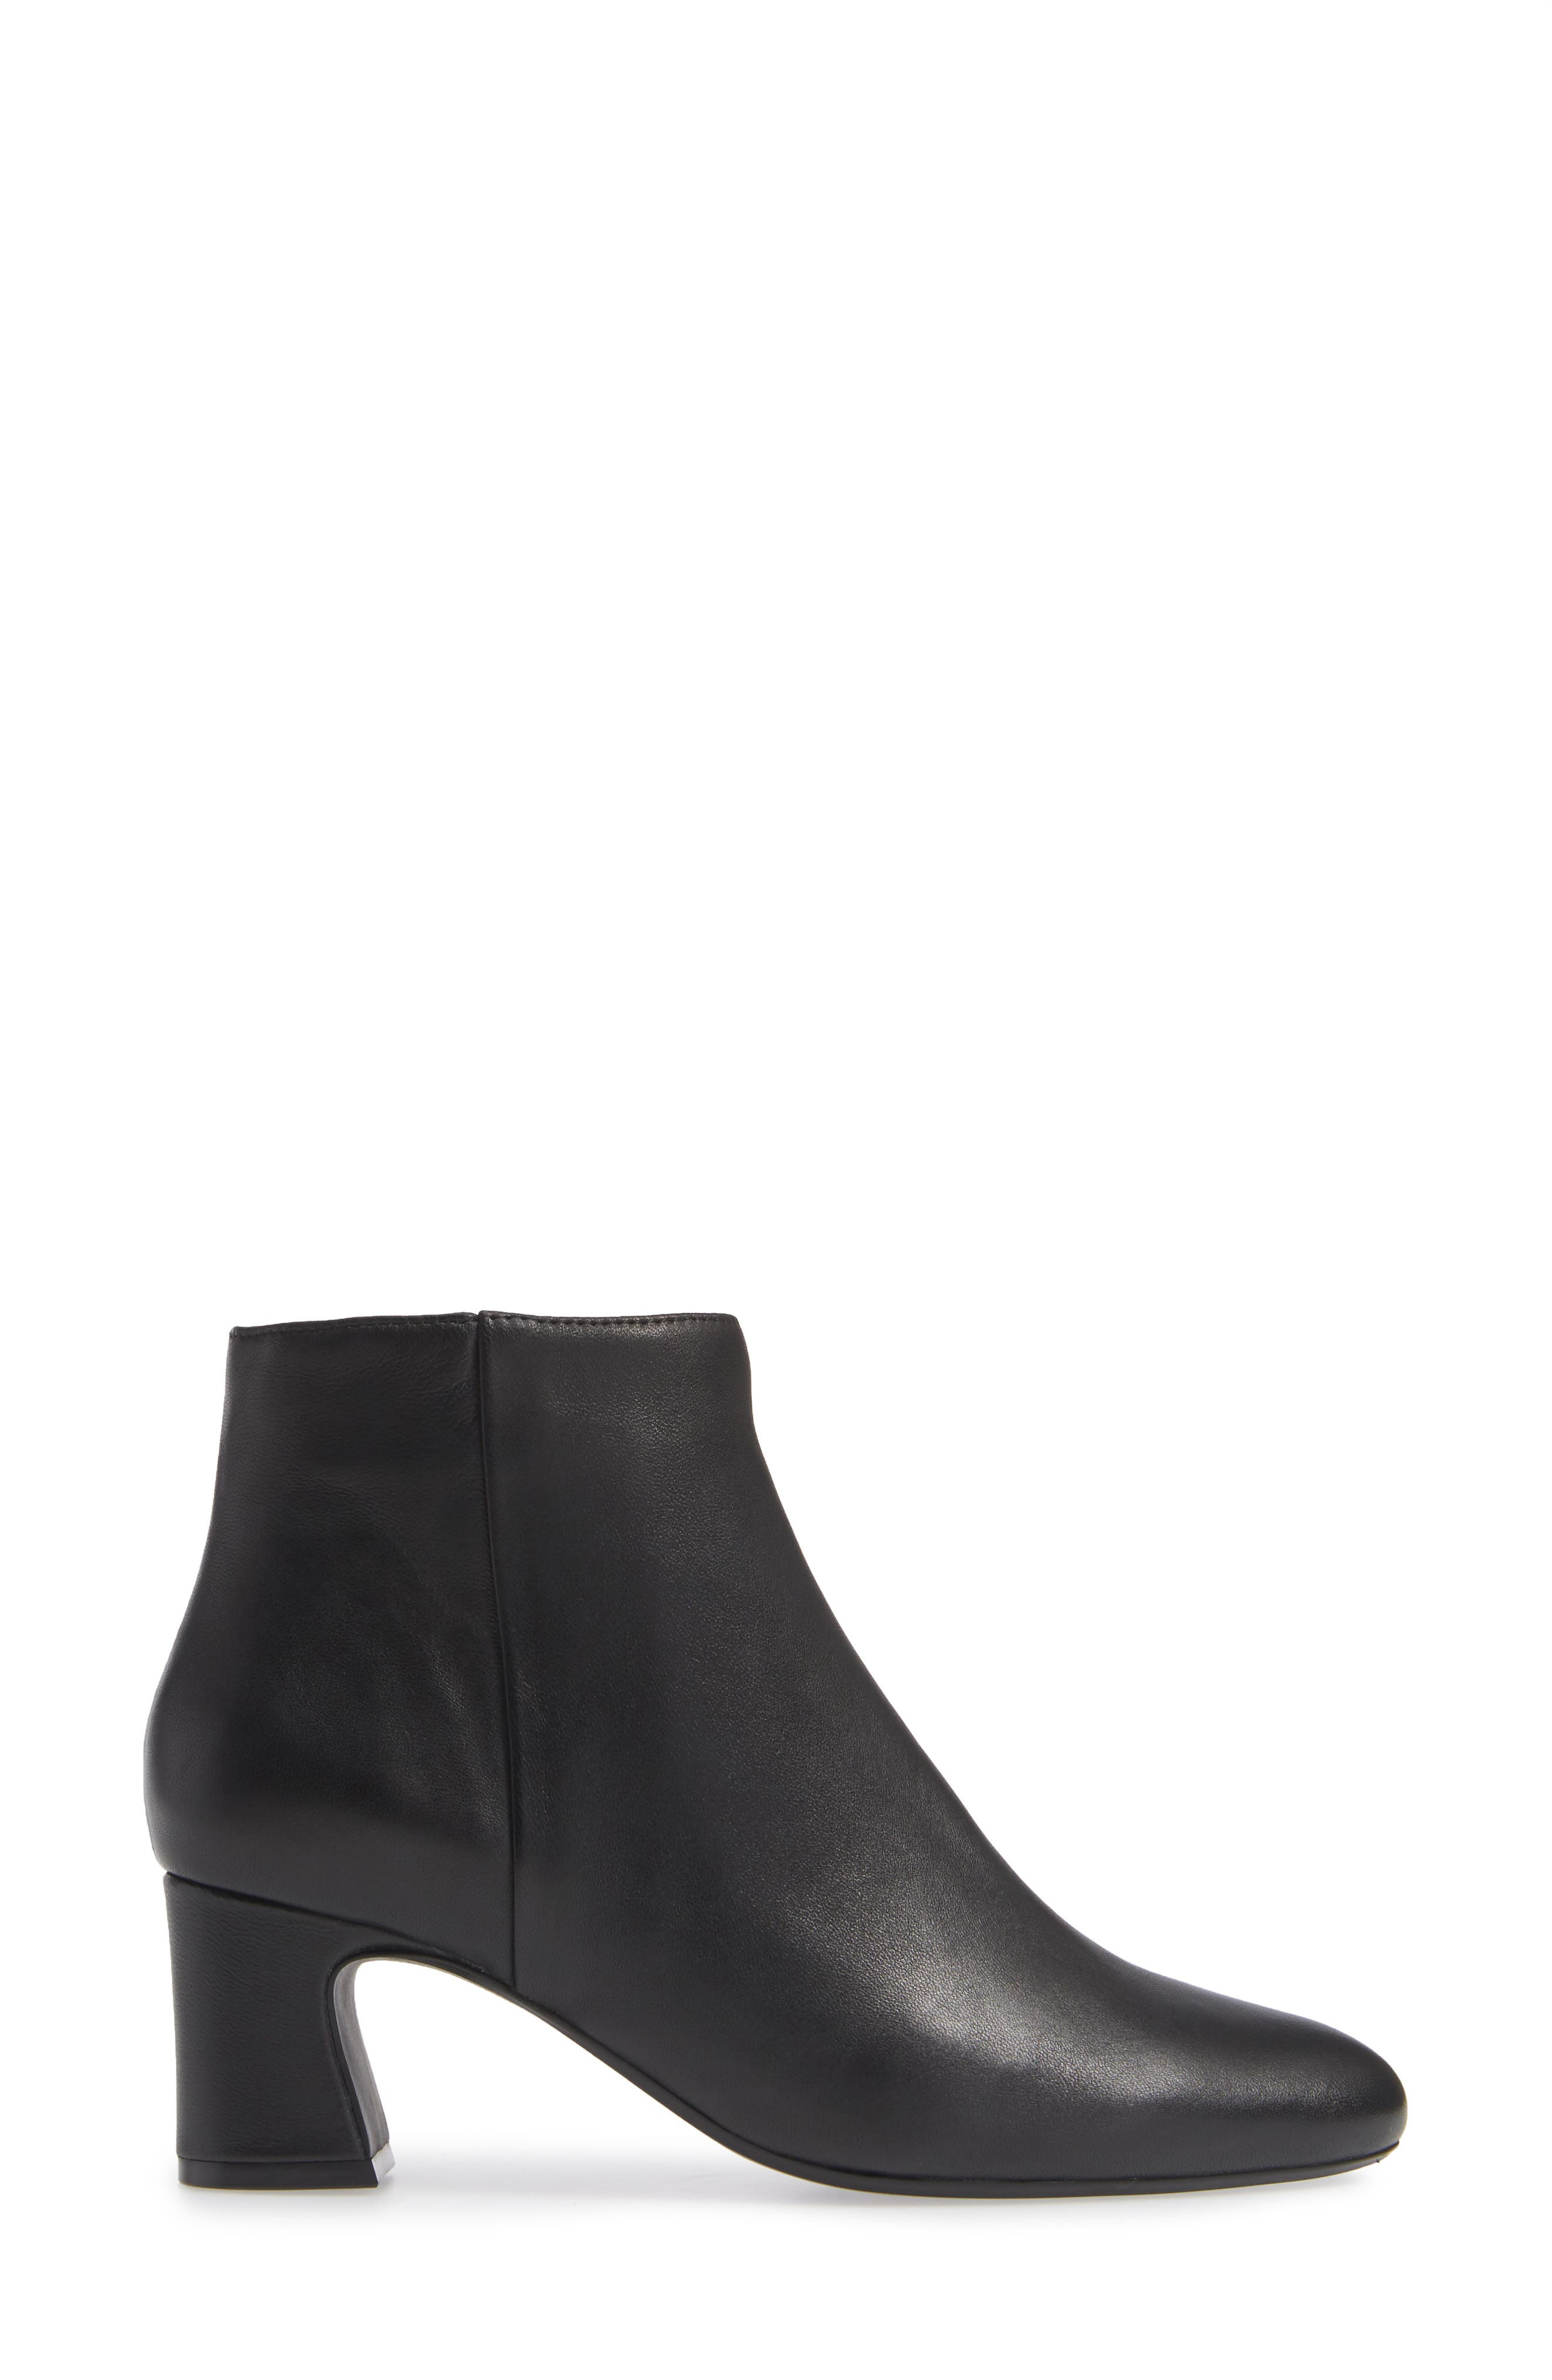 Dany Bootie,                             Alternate thumbnail 3, color,                             BLACK LEATHER